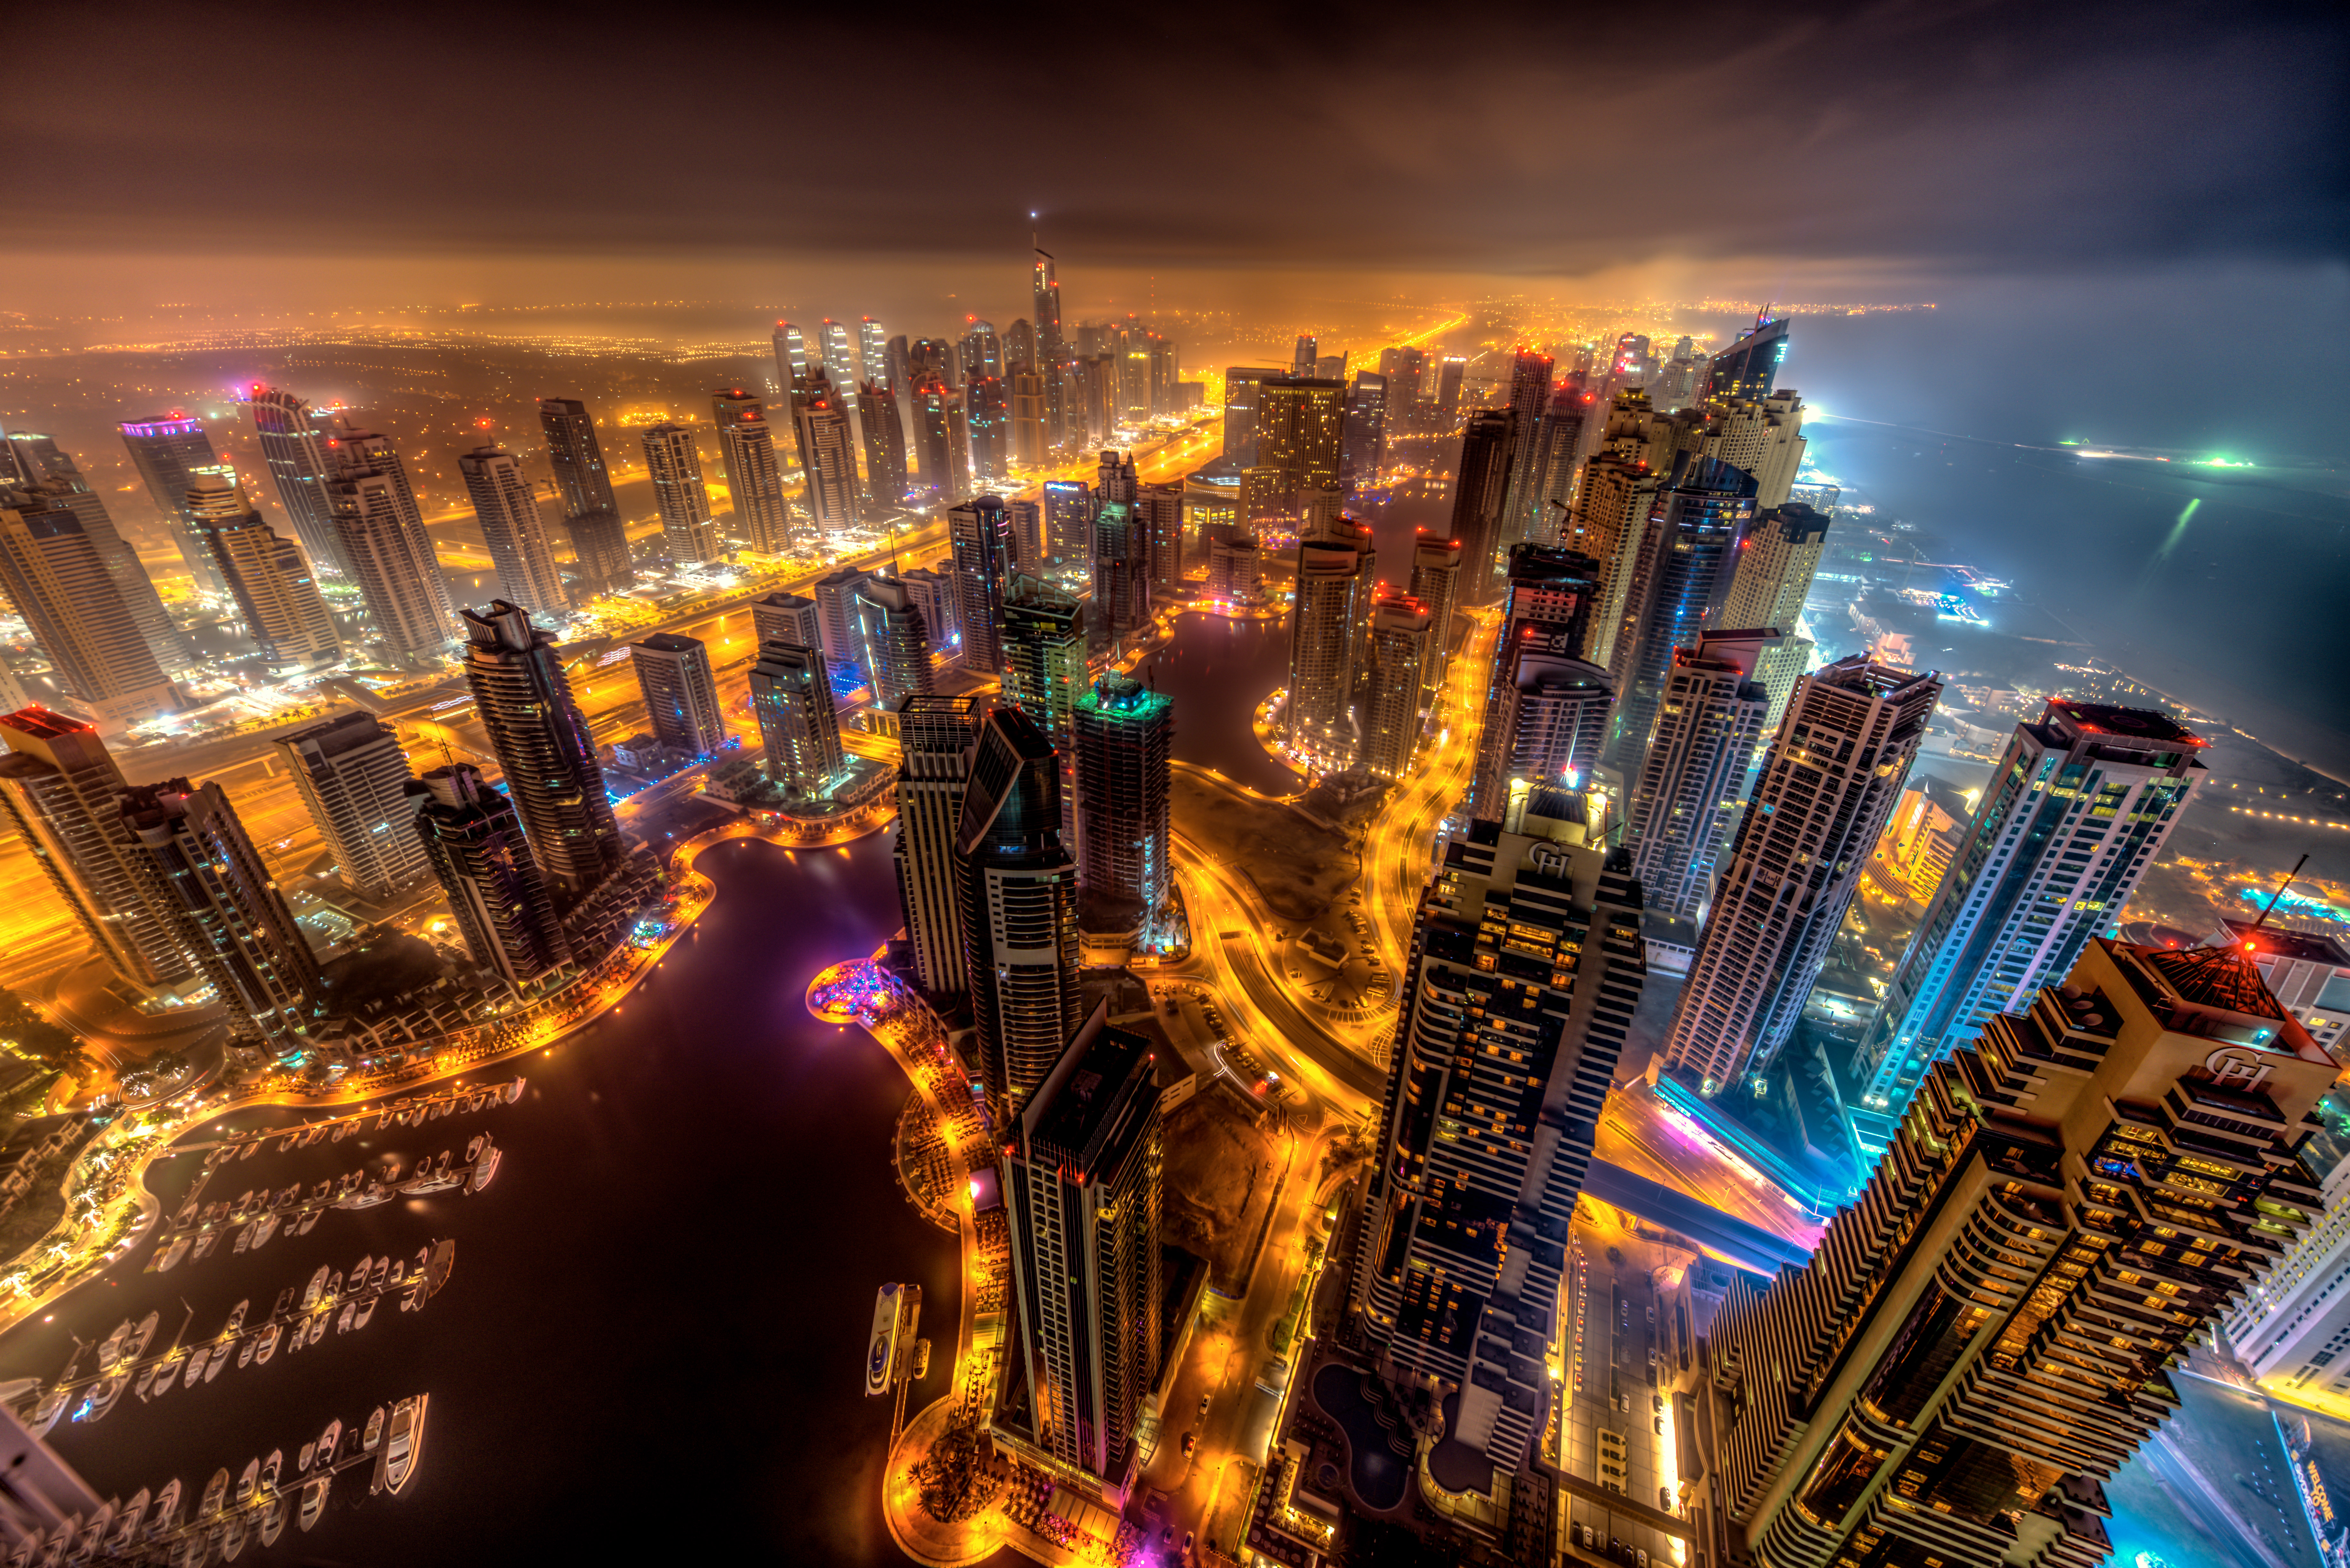 Dubai buildings night lights top view 8k hd world 4k wallpapers images backgrounds photos - On top of the world wallpaper ...